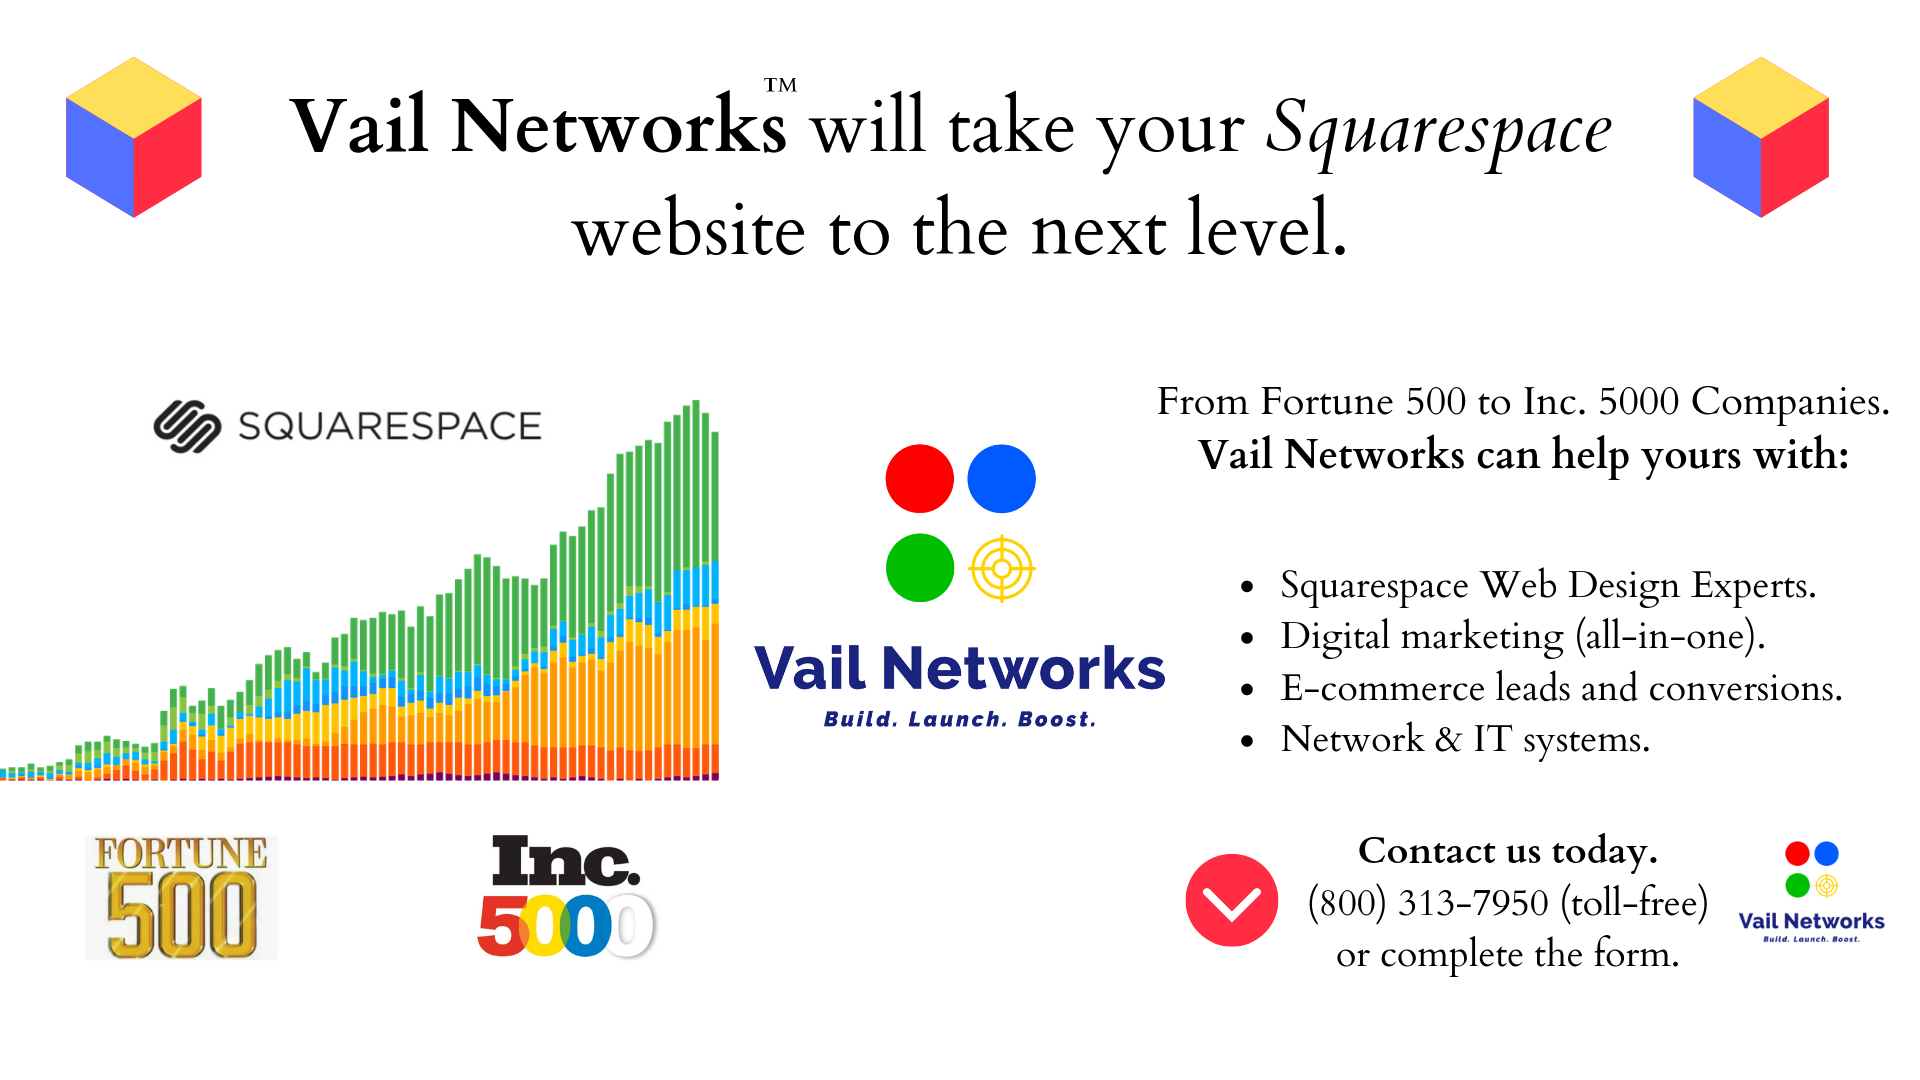 Company to help with squarespace web design and custom development: vailnetworks.com